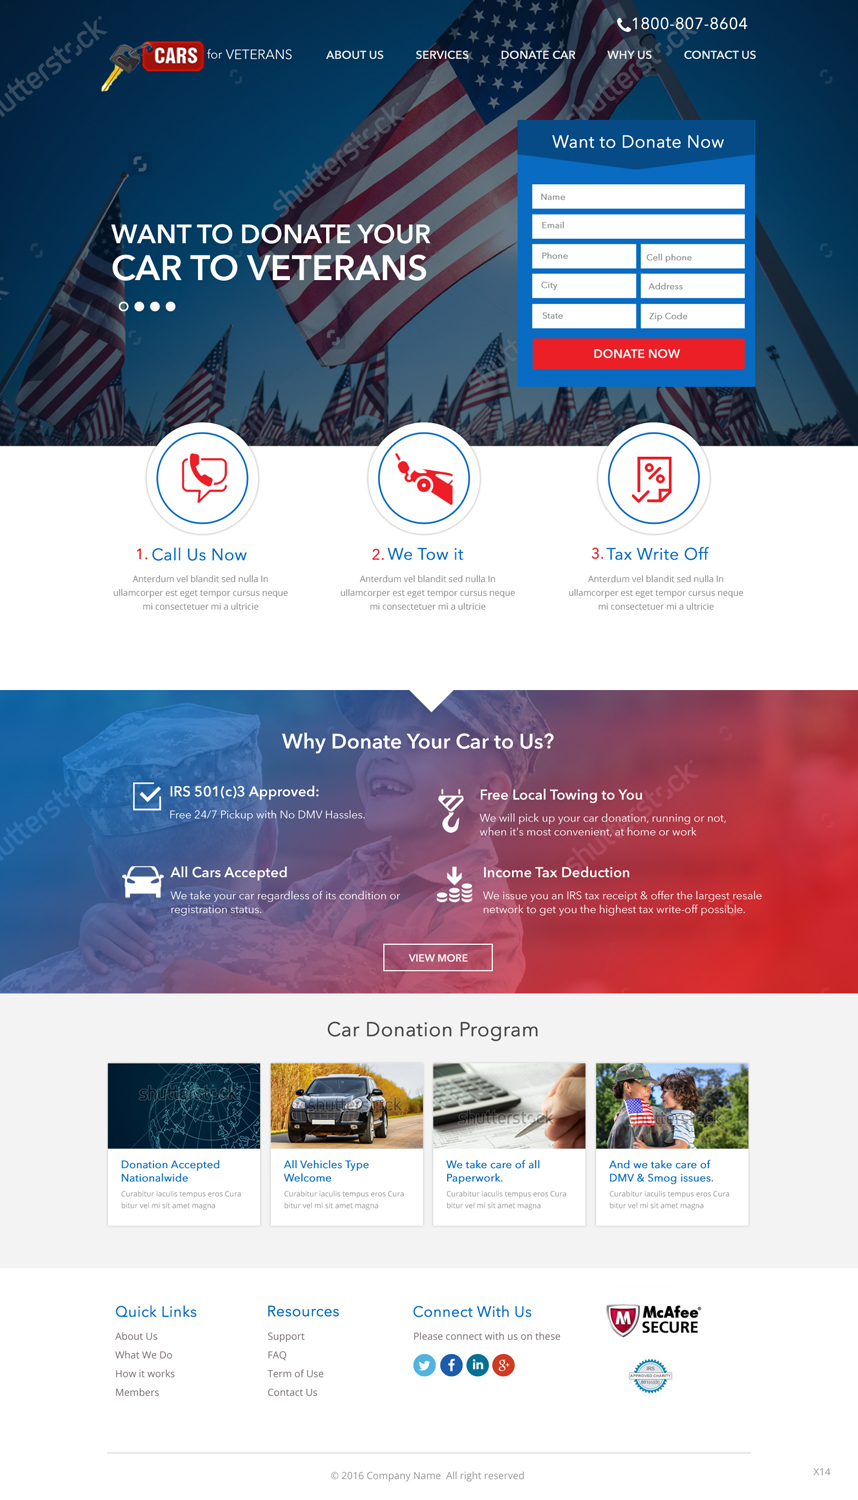 Elegant Playful Web Design For Look At Current One For Ideas By Pb Design 12884216